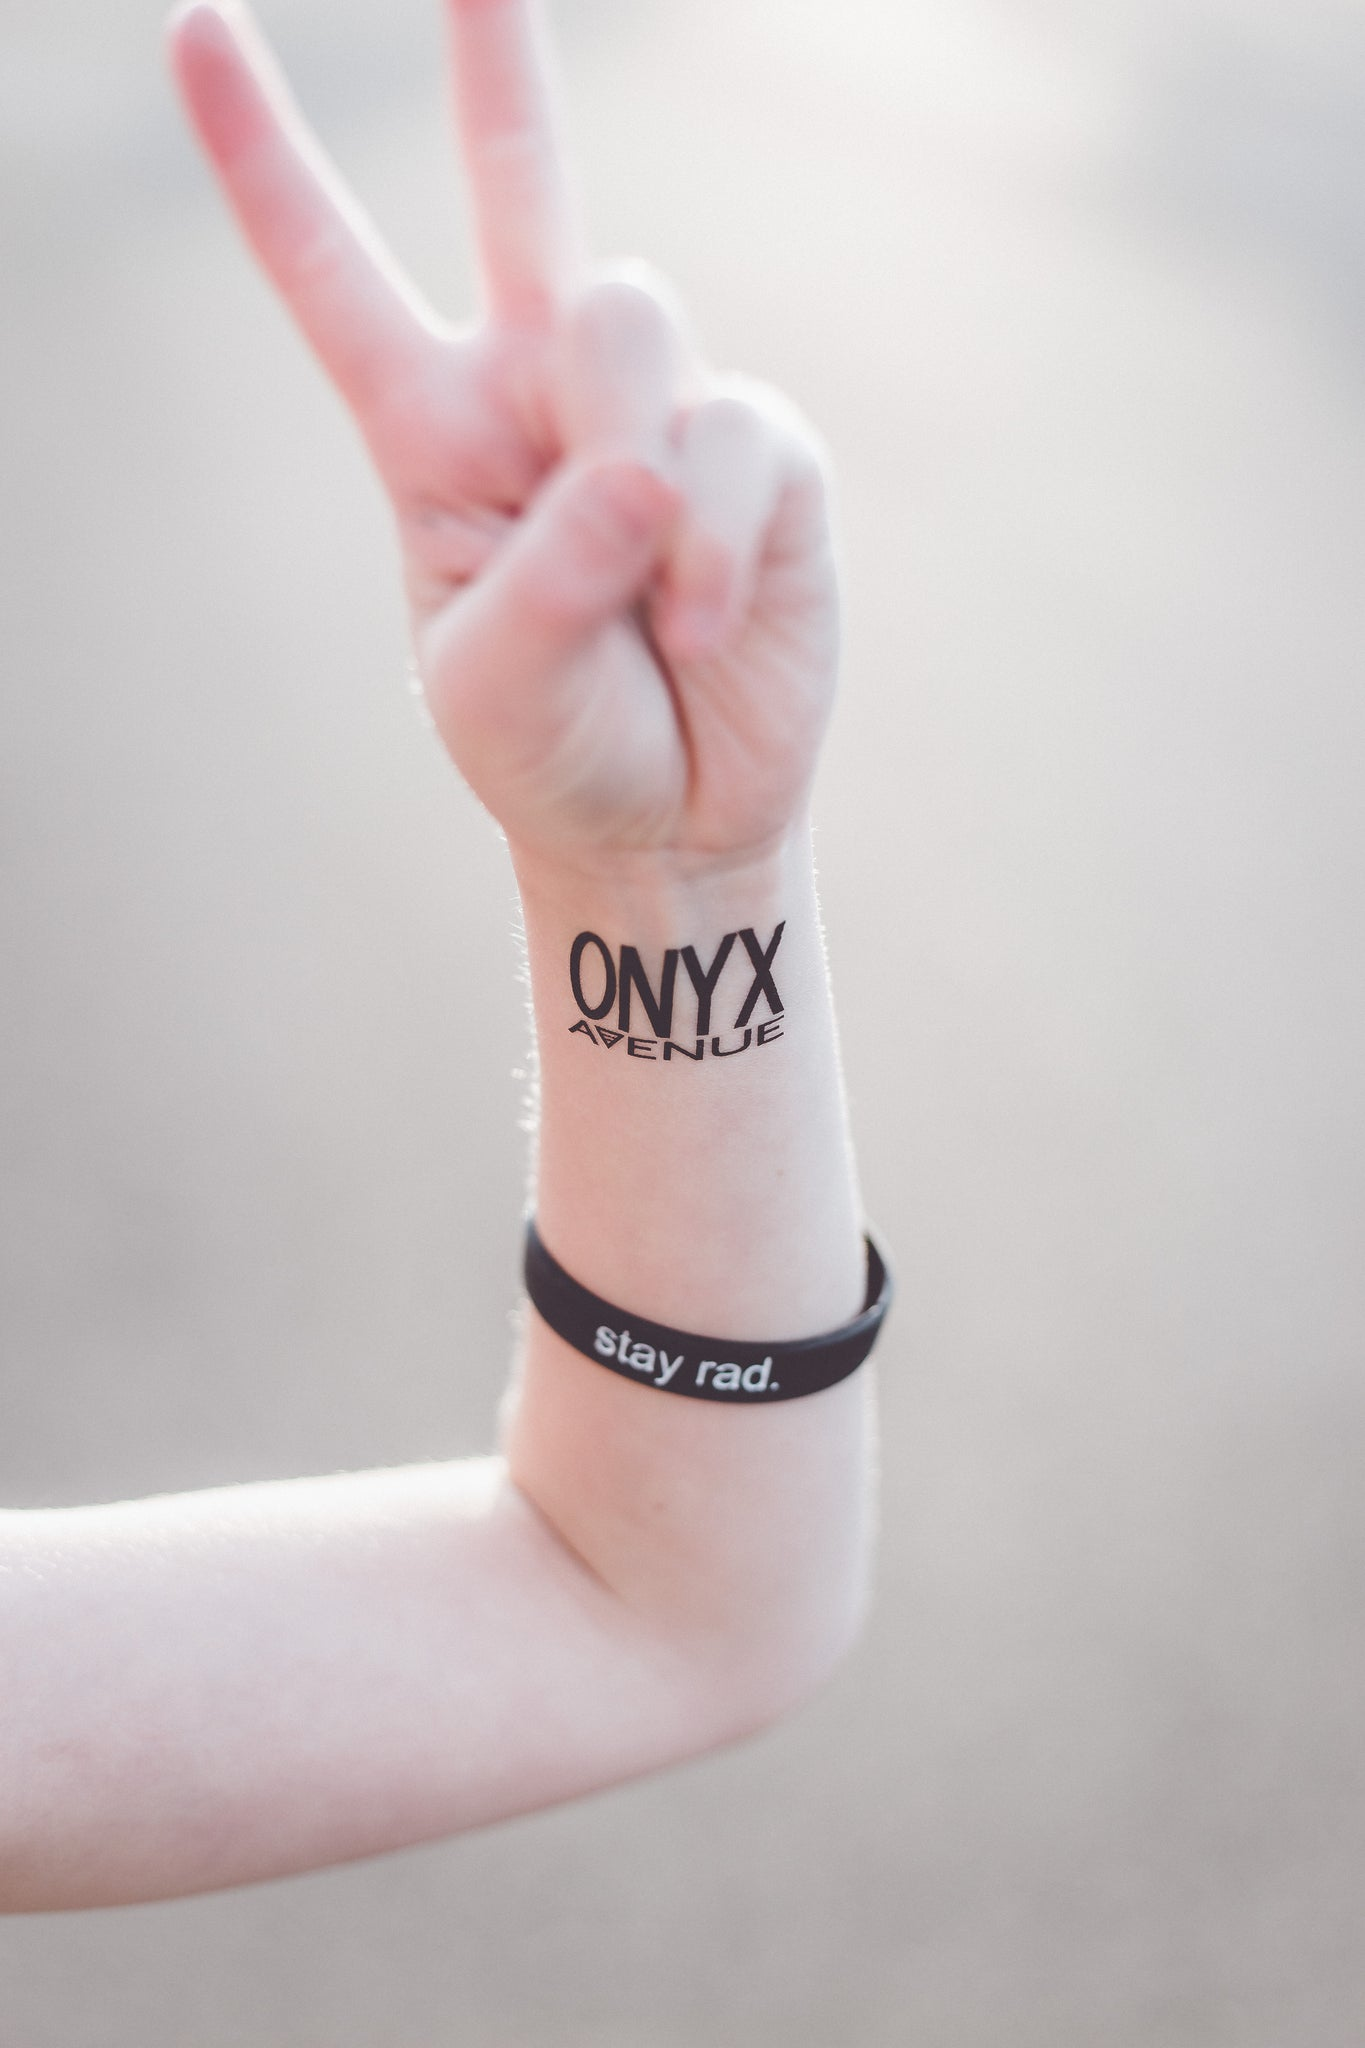 Onyx Avenue Temporary Tattoos